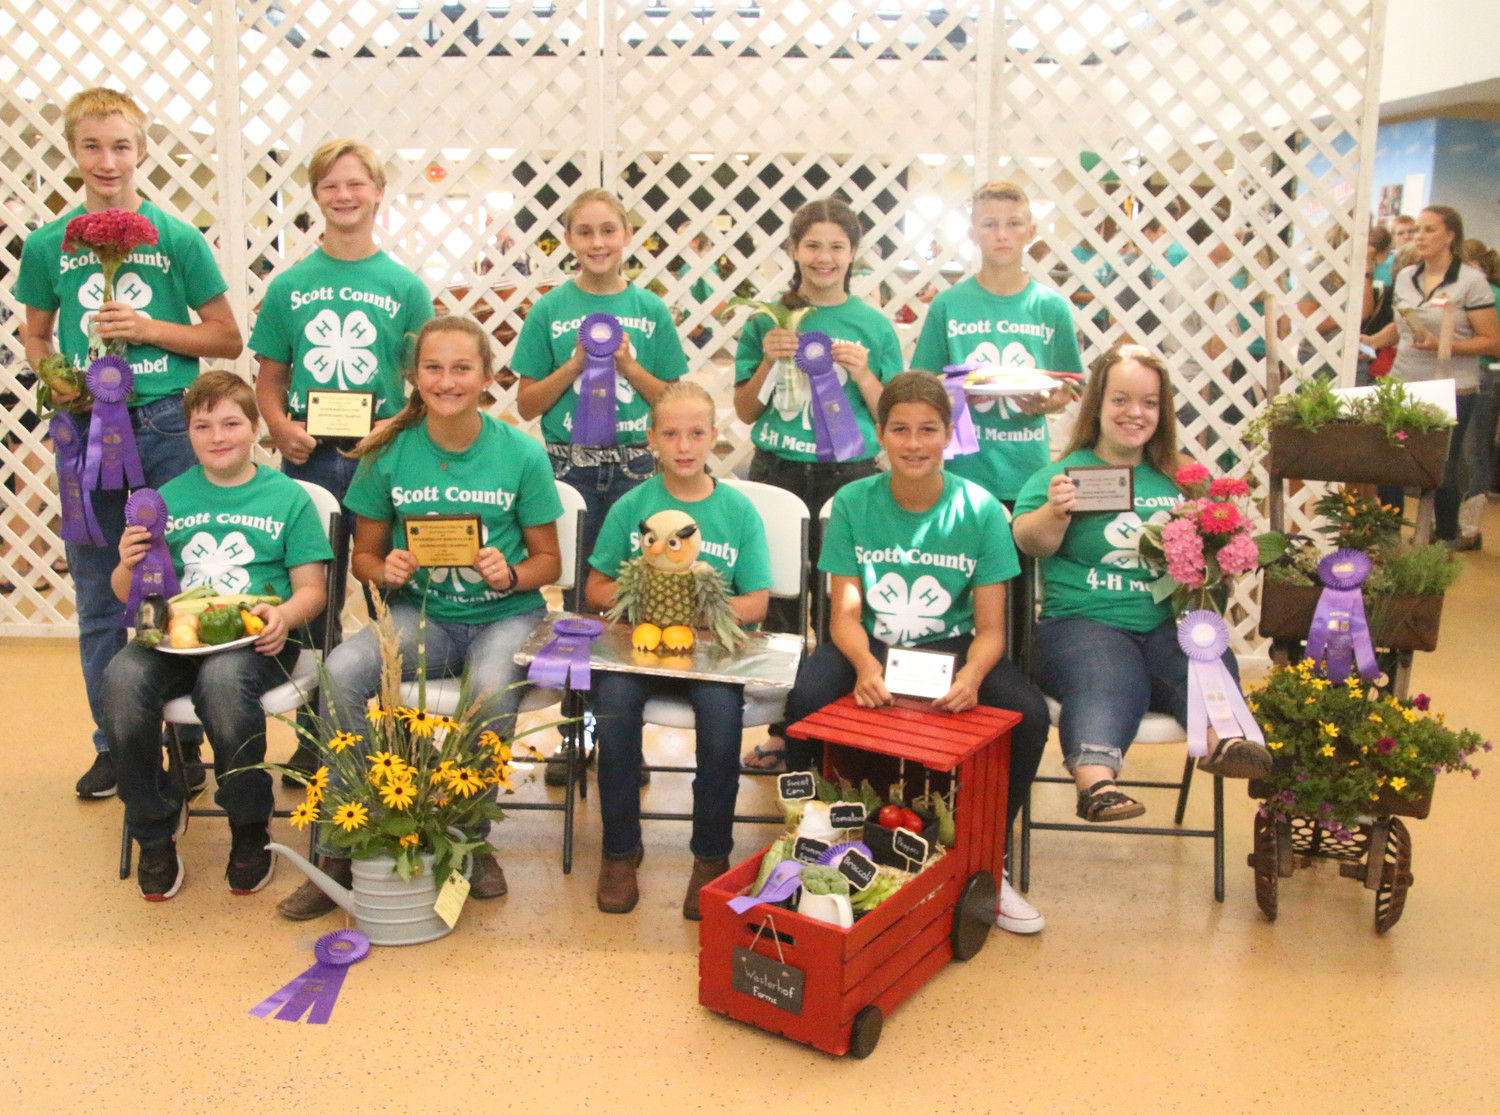 Earning Champion ribbons in the Horticulture Show were these 4-H'ers. Left:  Front (l-r):  Cael Mess, Claire Westendorf, Megan Musal, Sydney Westendorf and Lauren Lanum. Back: Aiden Mess, Bram Mess, Lainey Wall, Elizabeth Ziolkowski and Colton Pilgrim.